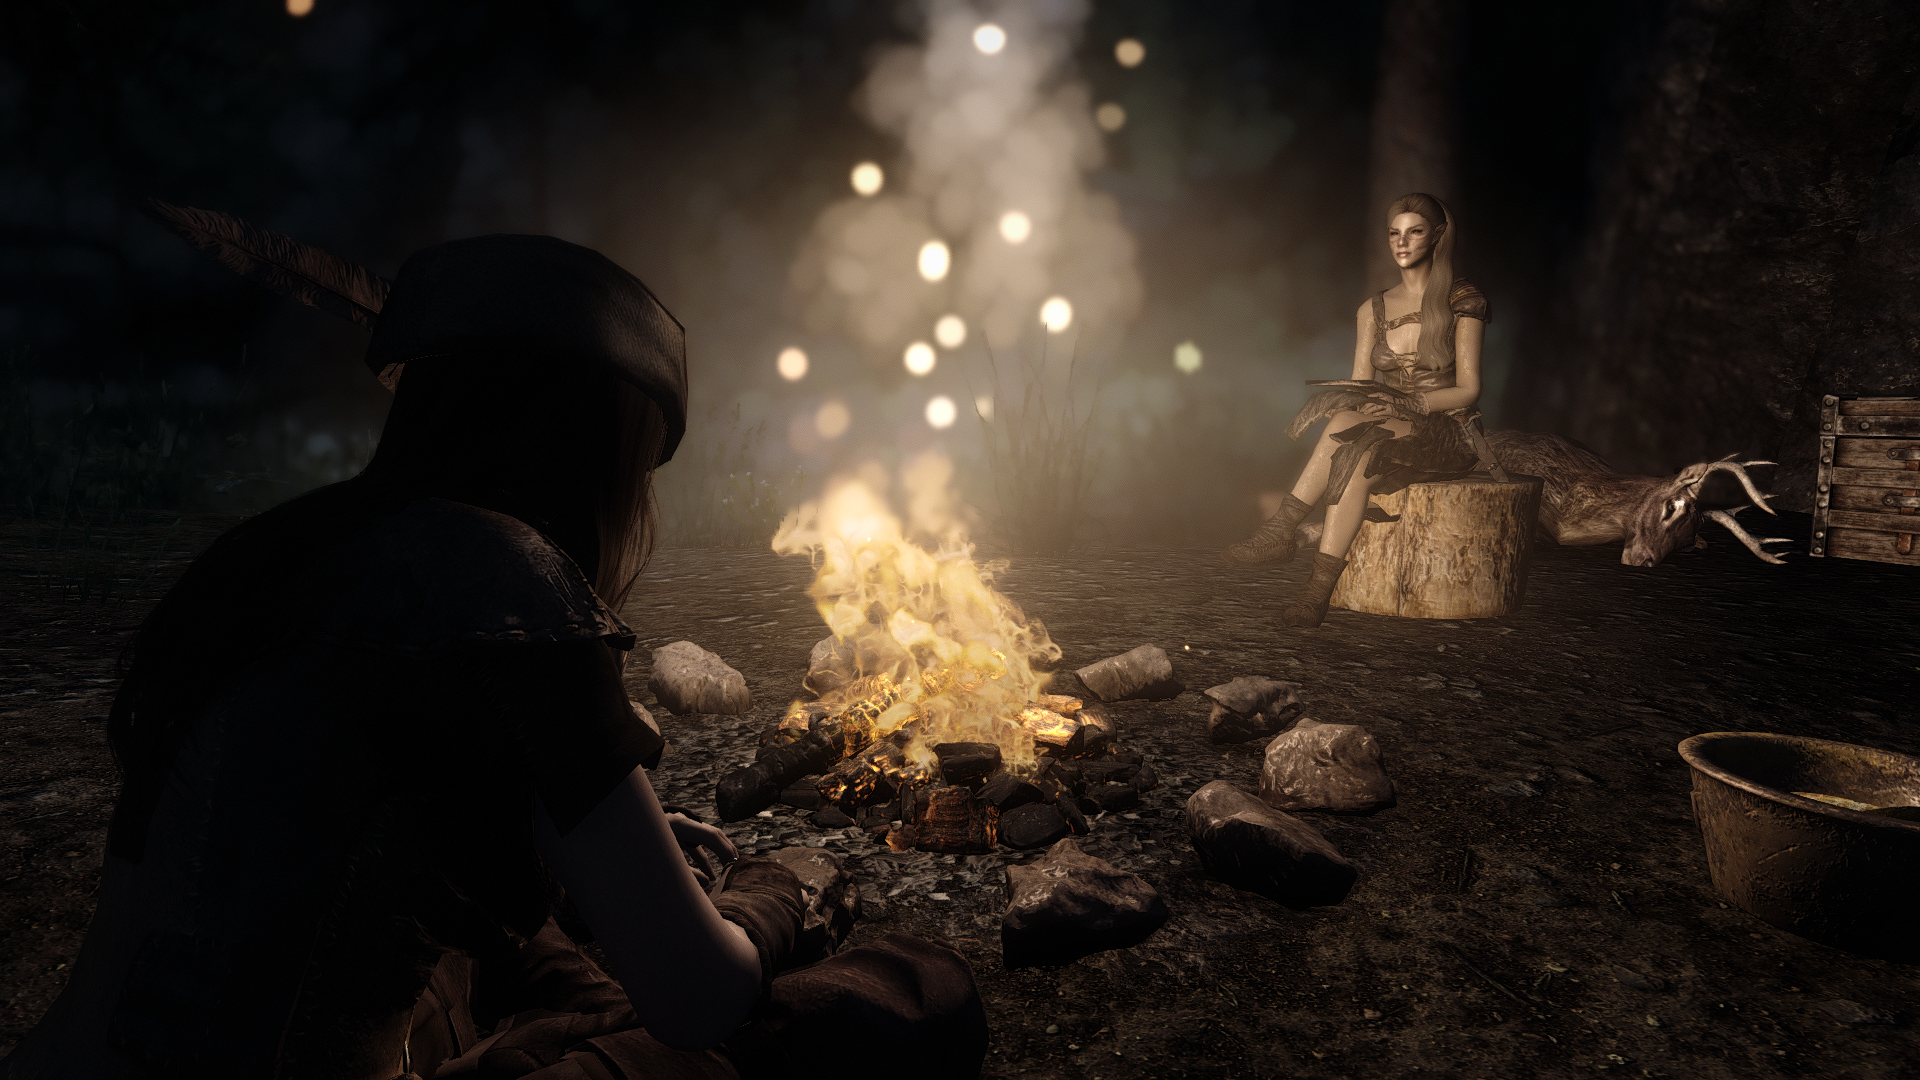 Chilling at the campfire